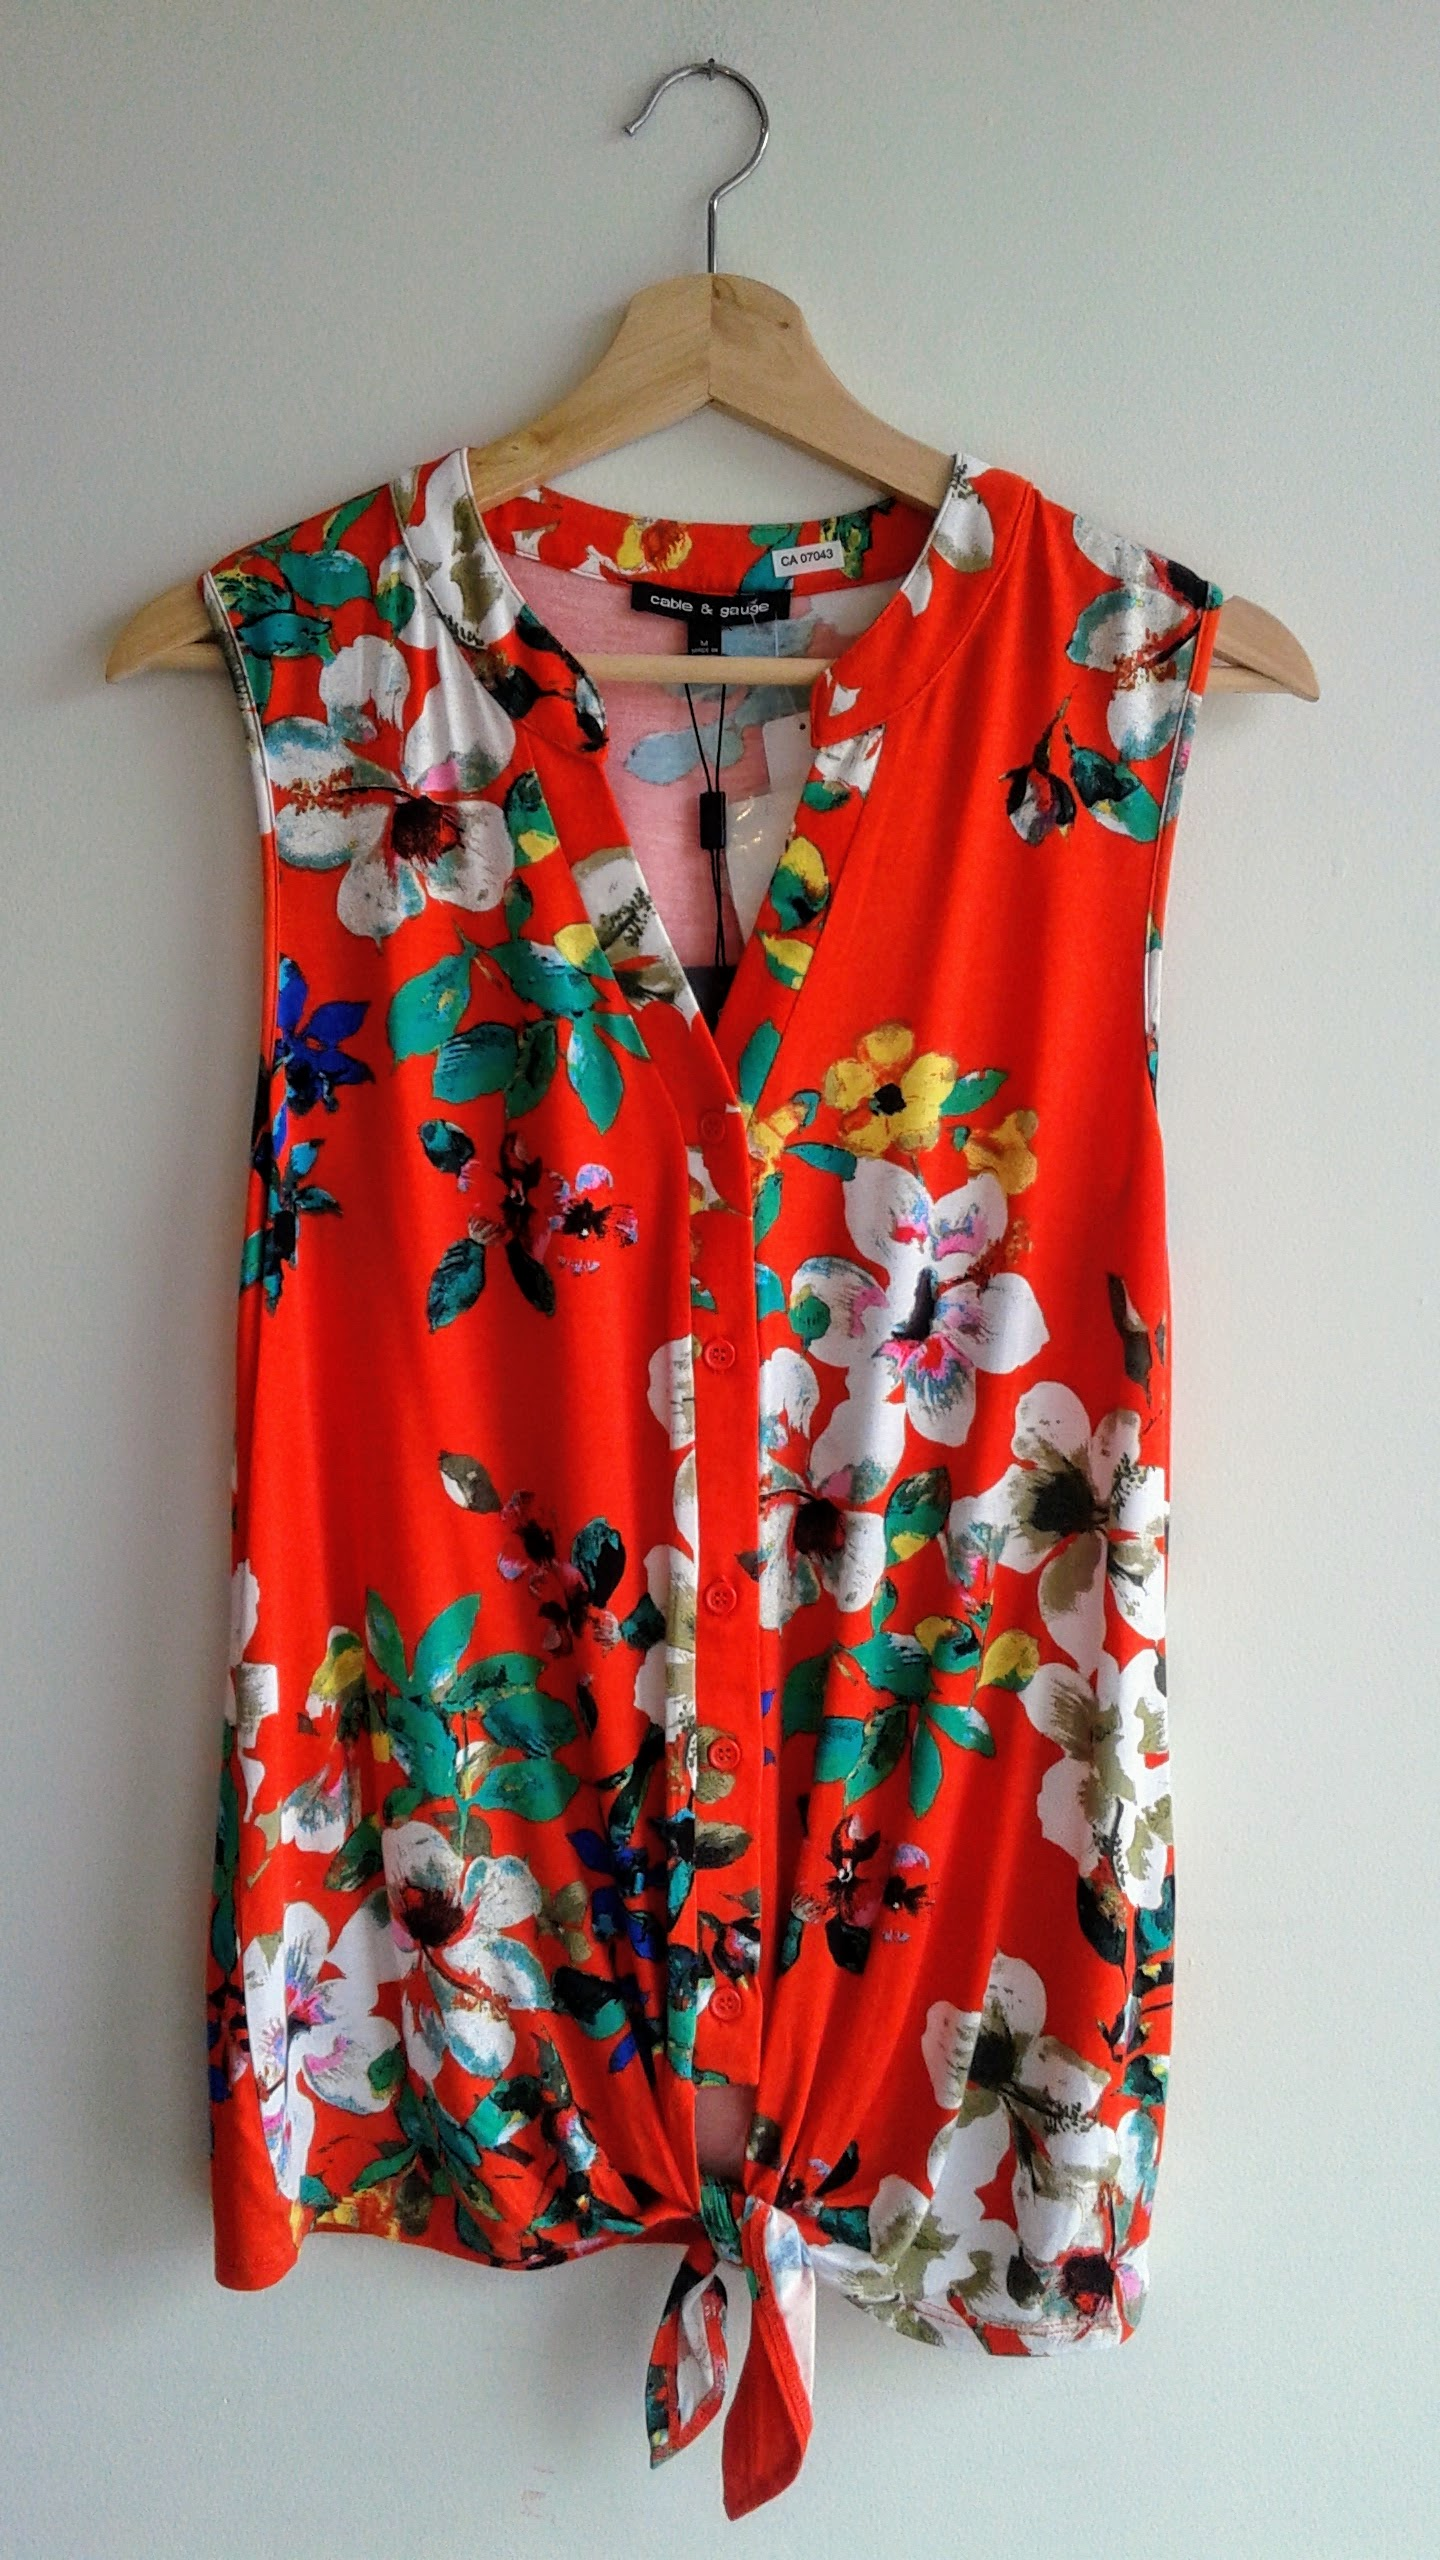 Cable and Gauge top (NWT); Size M, $24